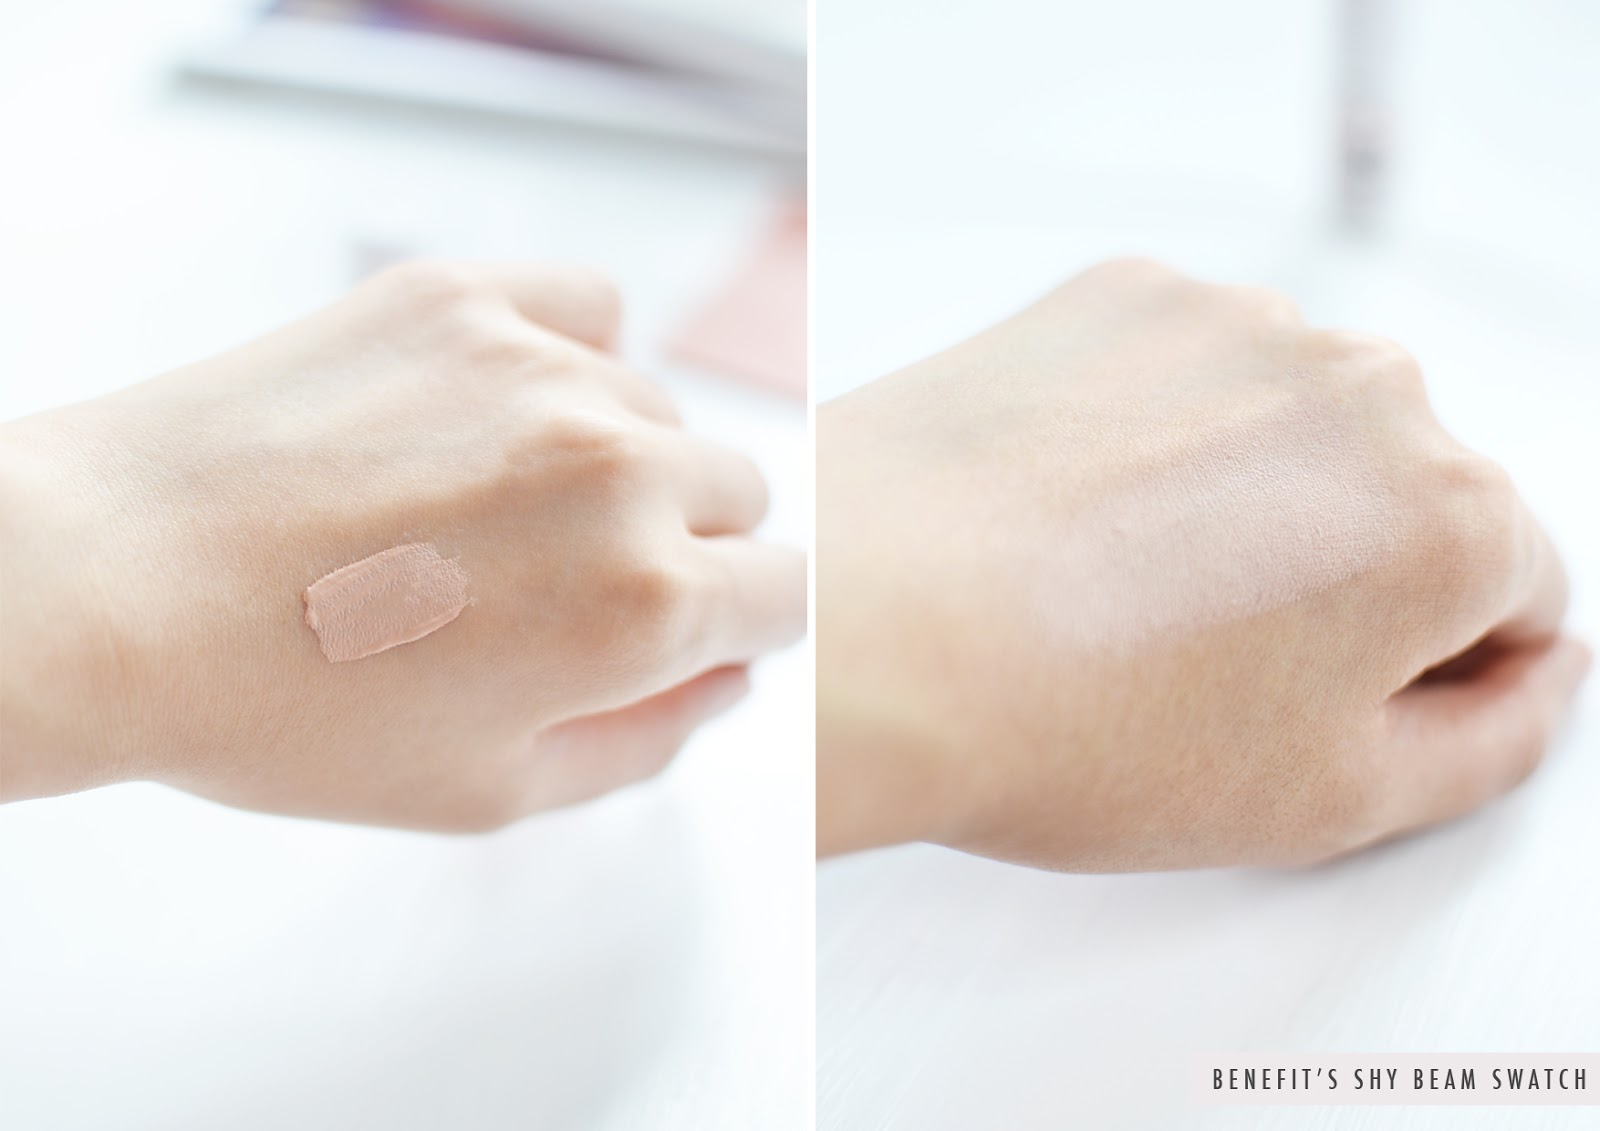 swatch of Benefit's shy beam highlighter